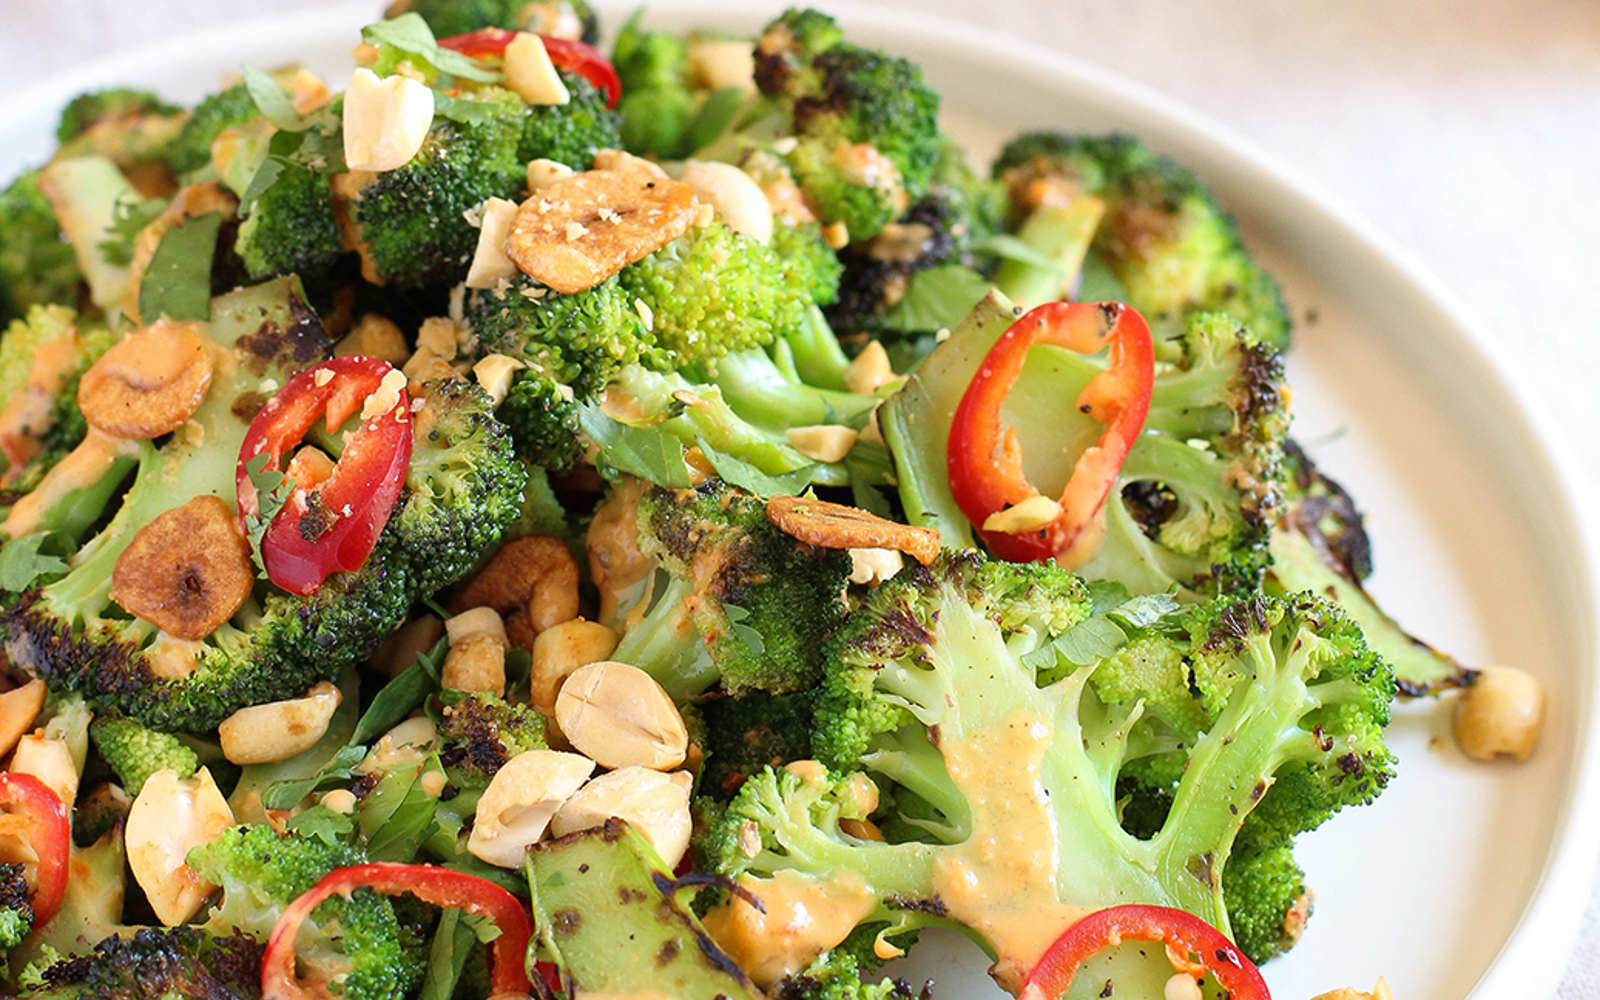 Spicy Broccoli Salad With Peanut Dressing 1